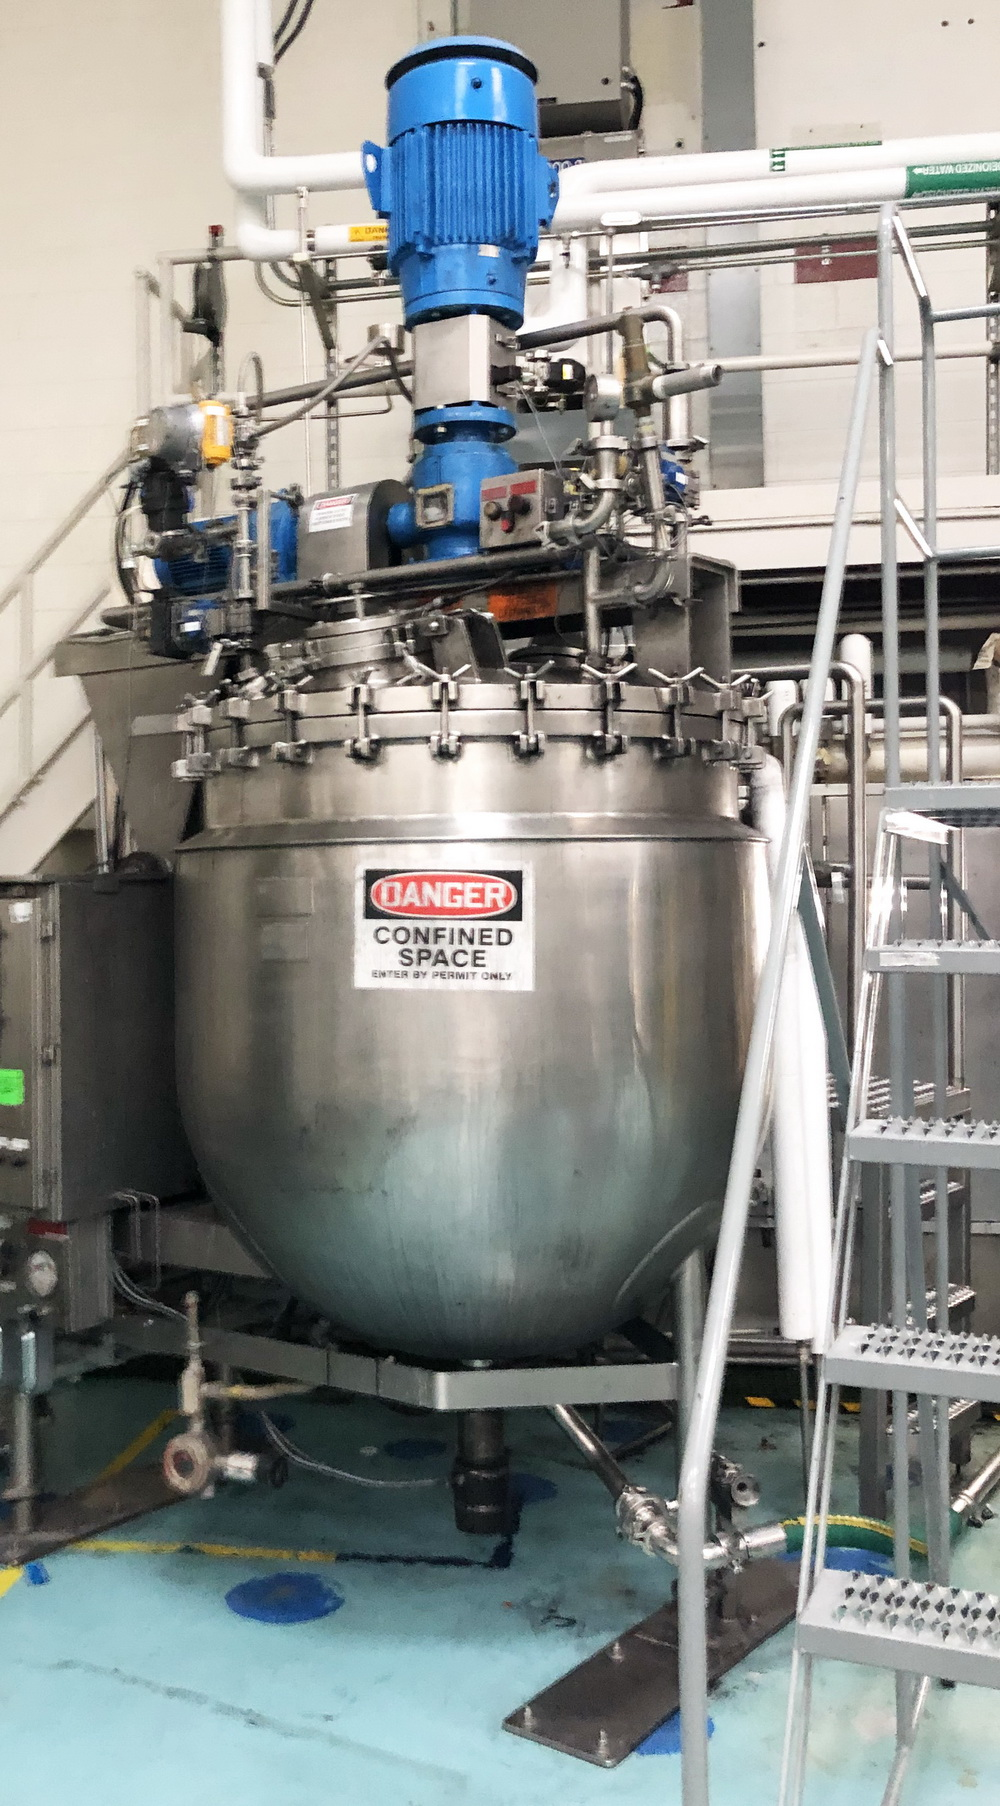 """Greerco/Gifford Wood 1,000 Liter (250 gal) 316 SS Jacketed Triple Motion """"Agi-Mix"""" Kettle/Reactor - Image 3 of 27"""